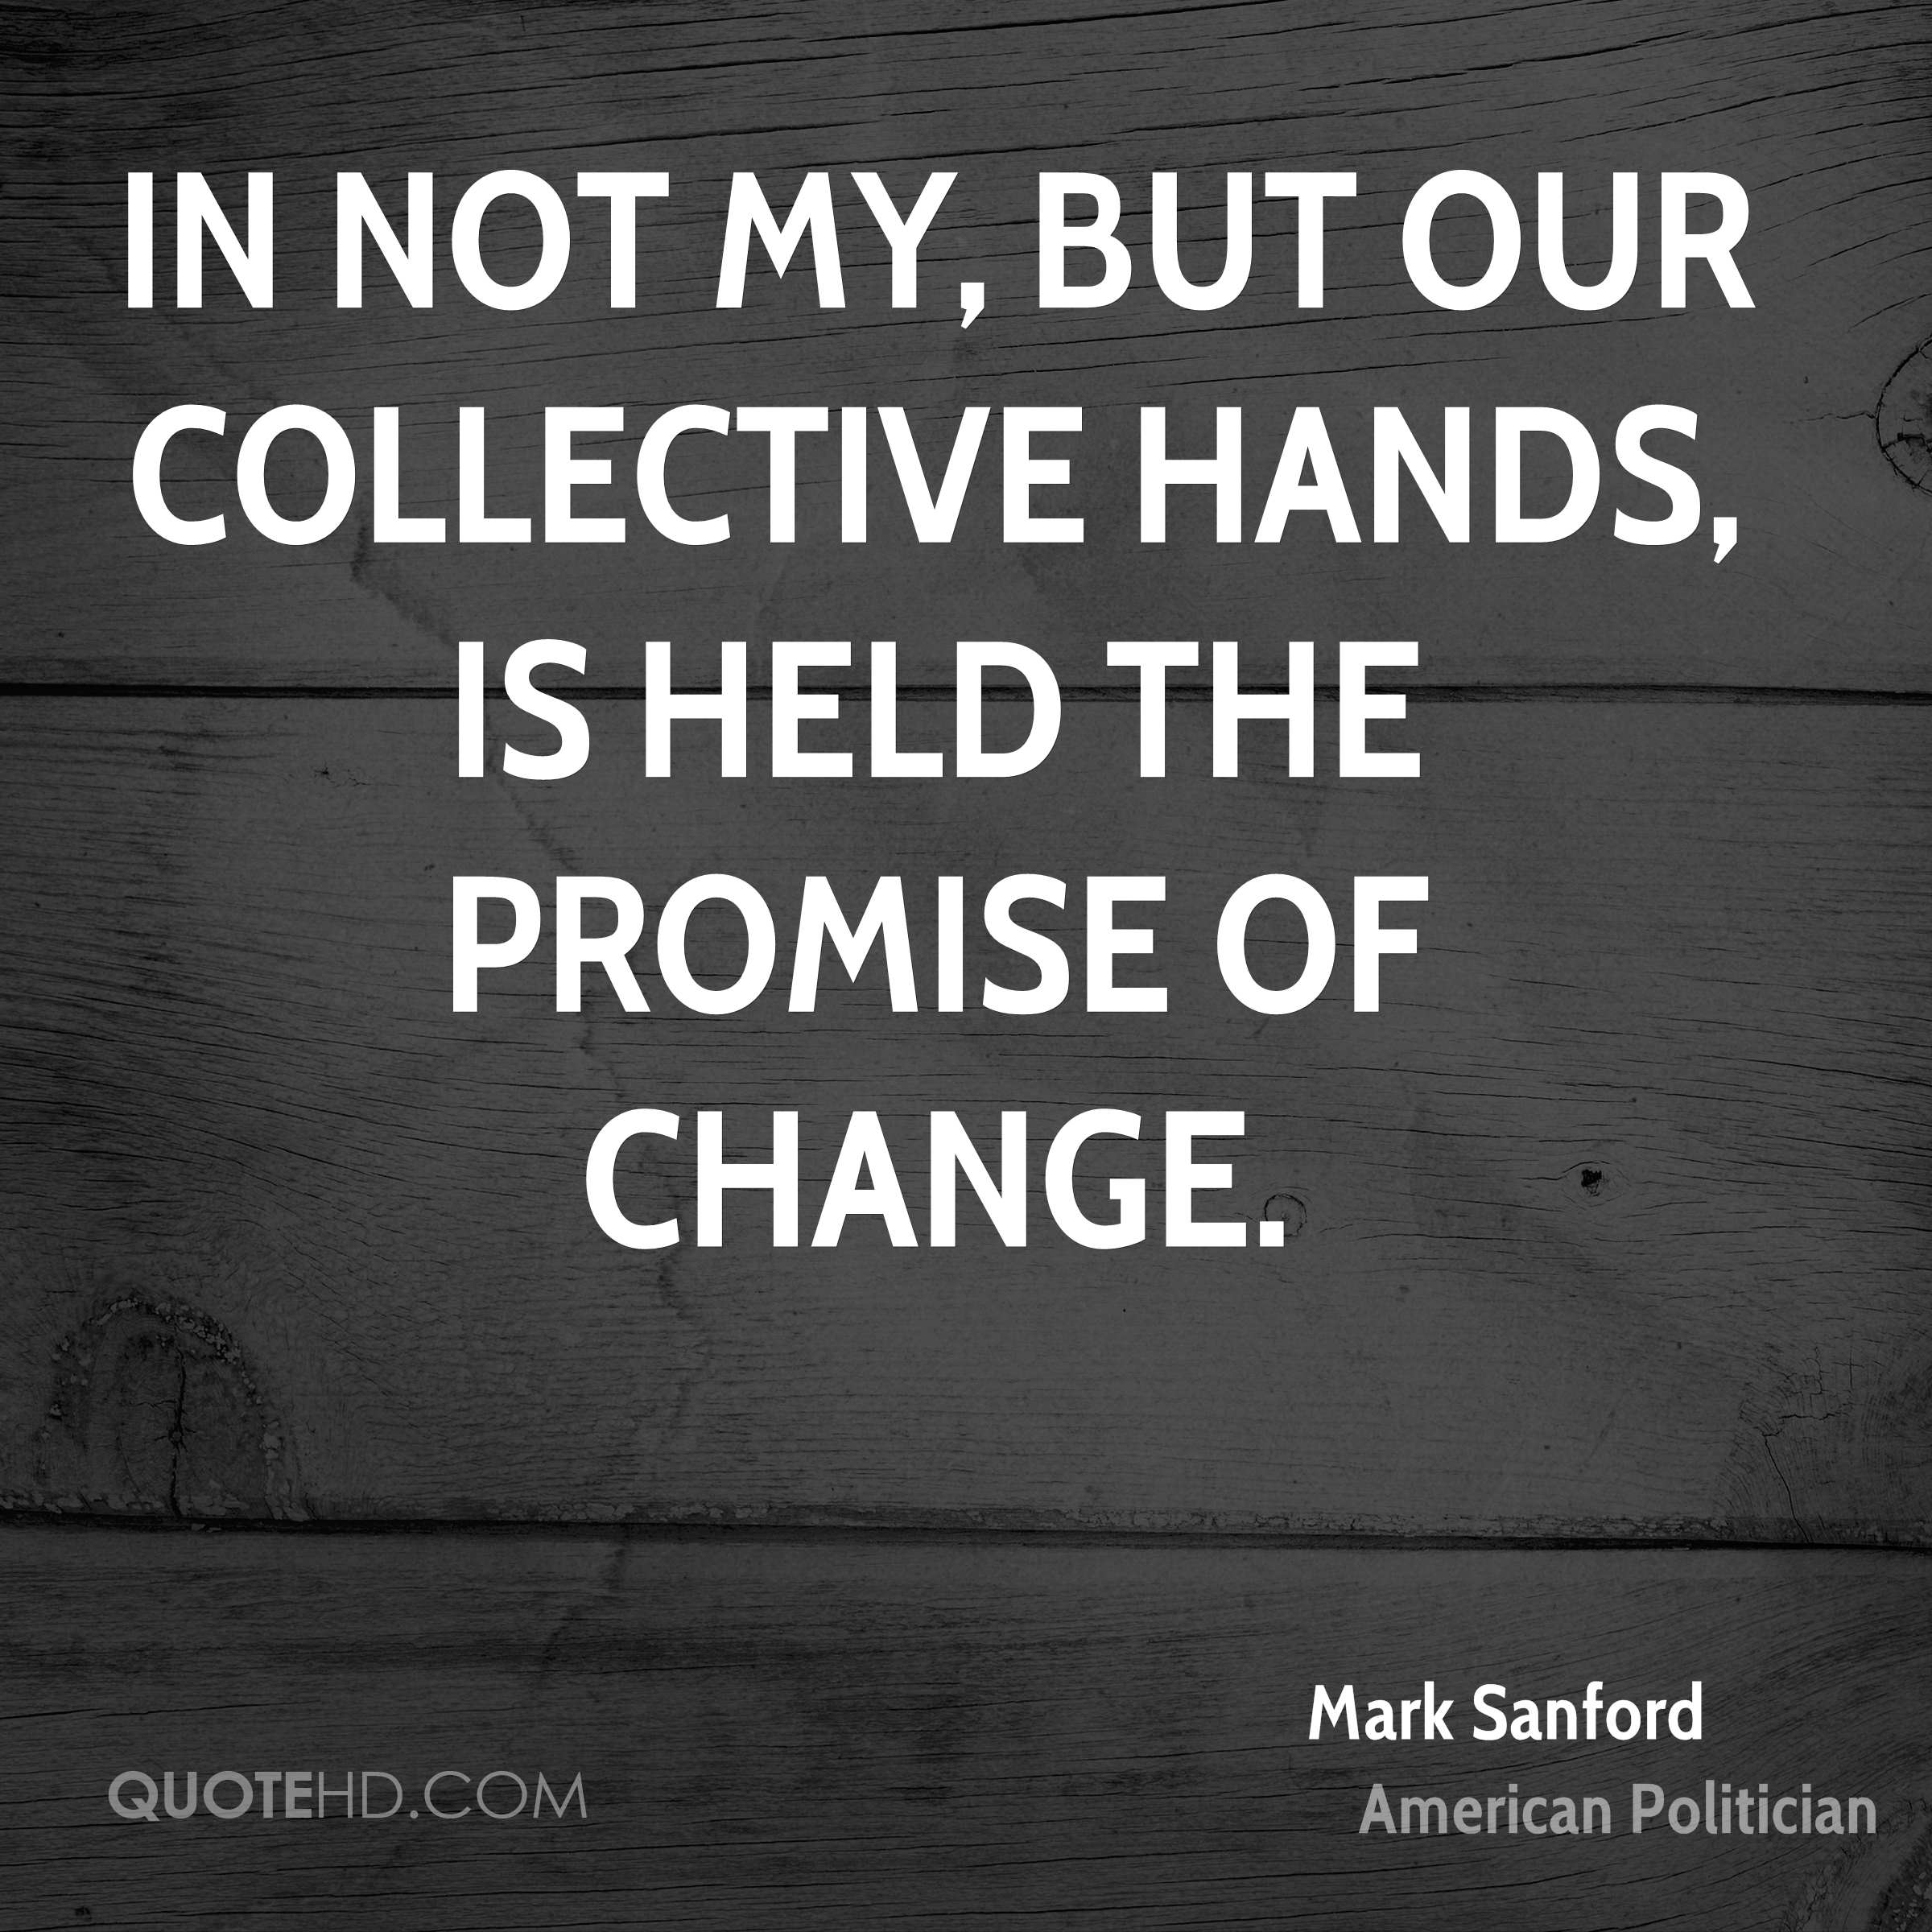 In not my, but our collective hands, is held the promise of change.